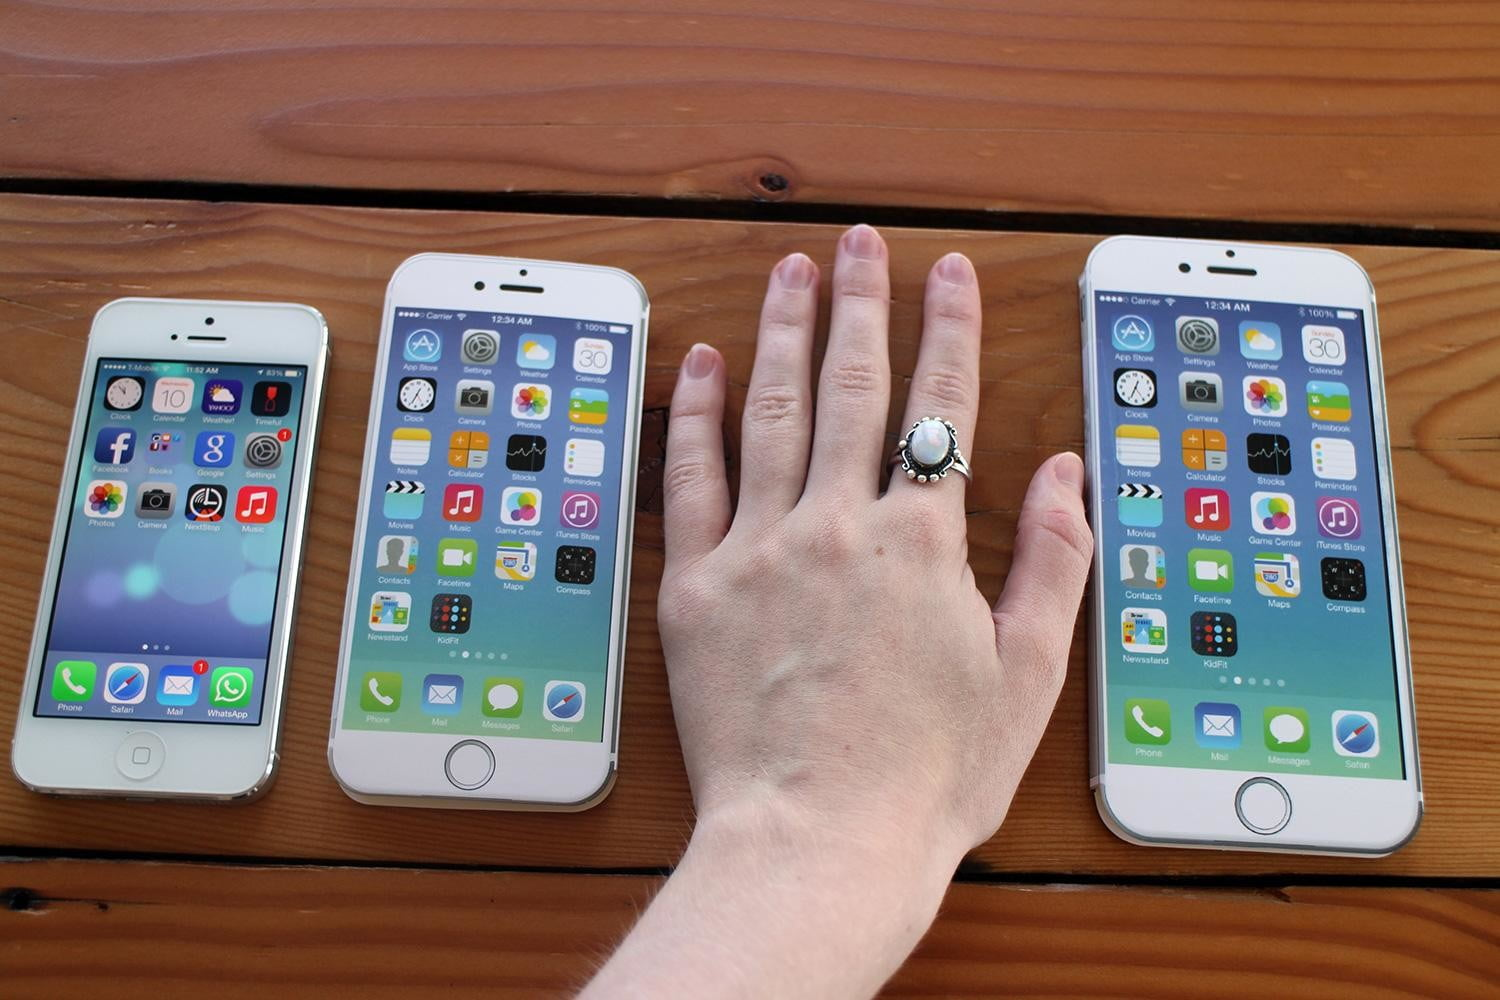 iPhone 5, iPhone 6, hand, and iPhone 6 Plus